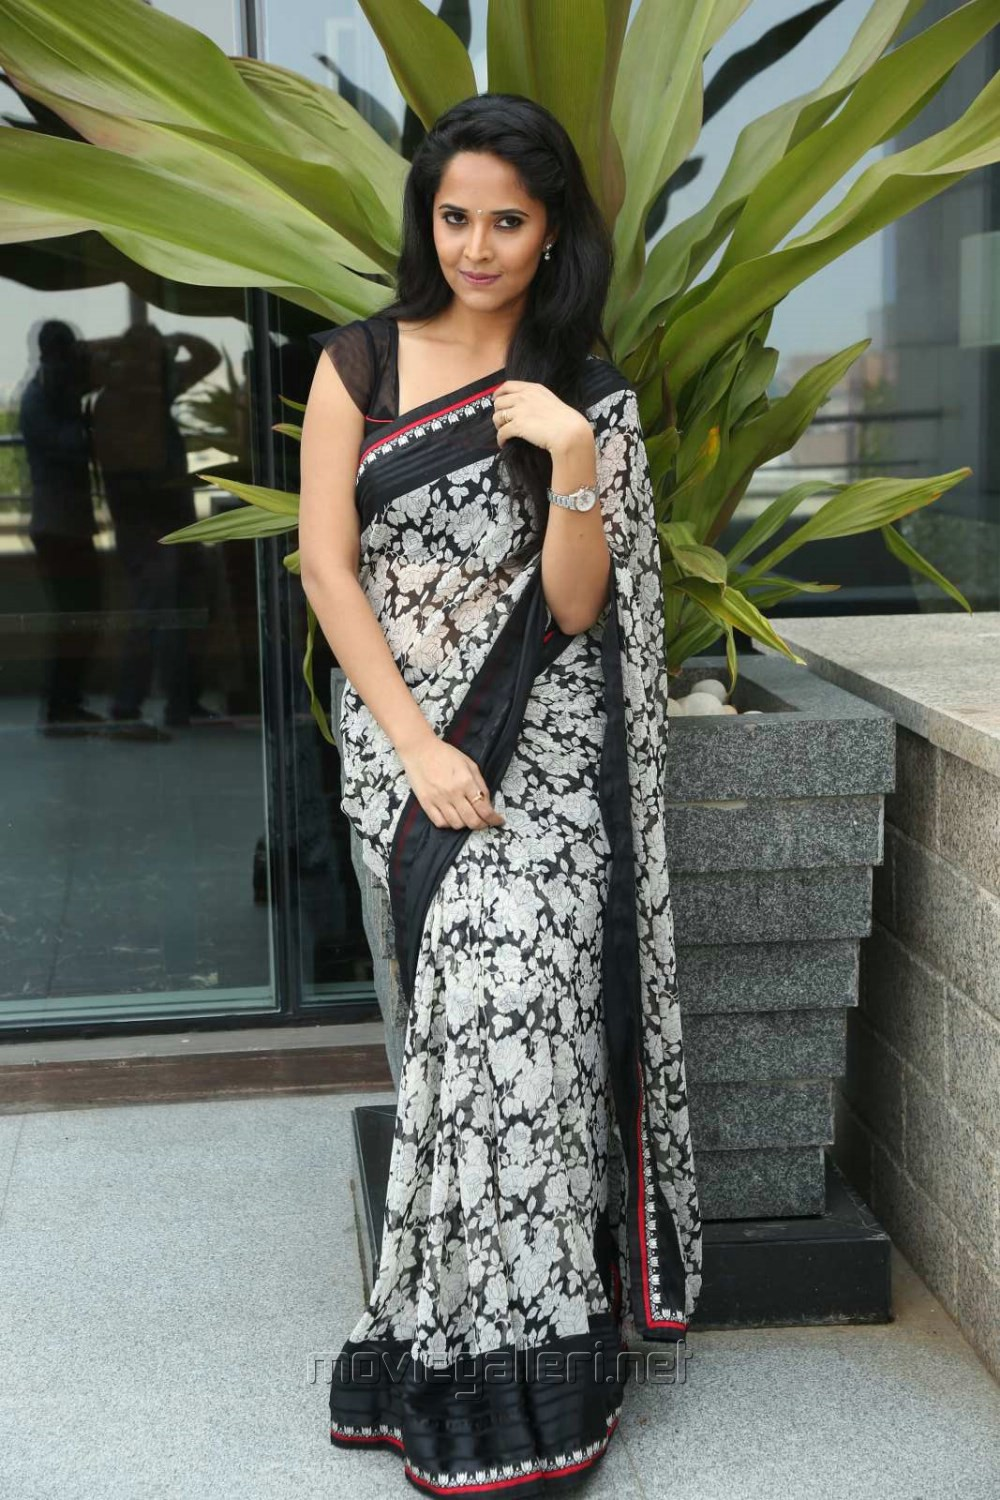 Actress Anasuya in Saree Stills @ Shop CJ Telugu Channel Launch